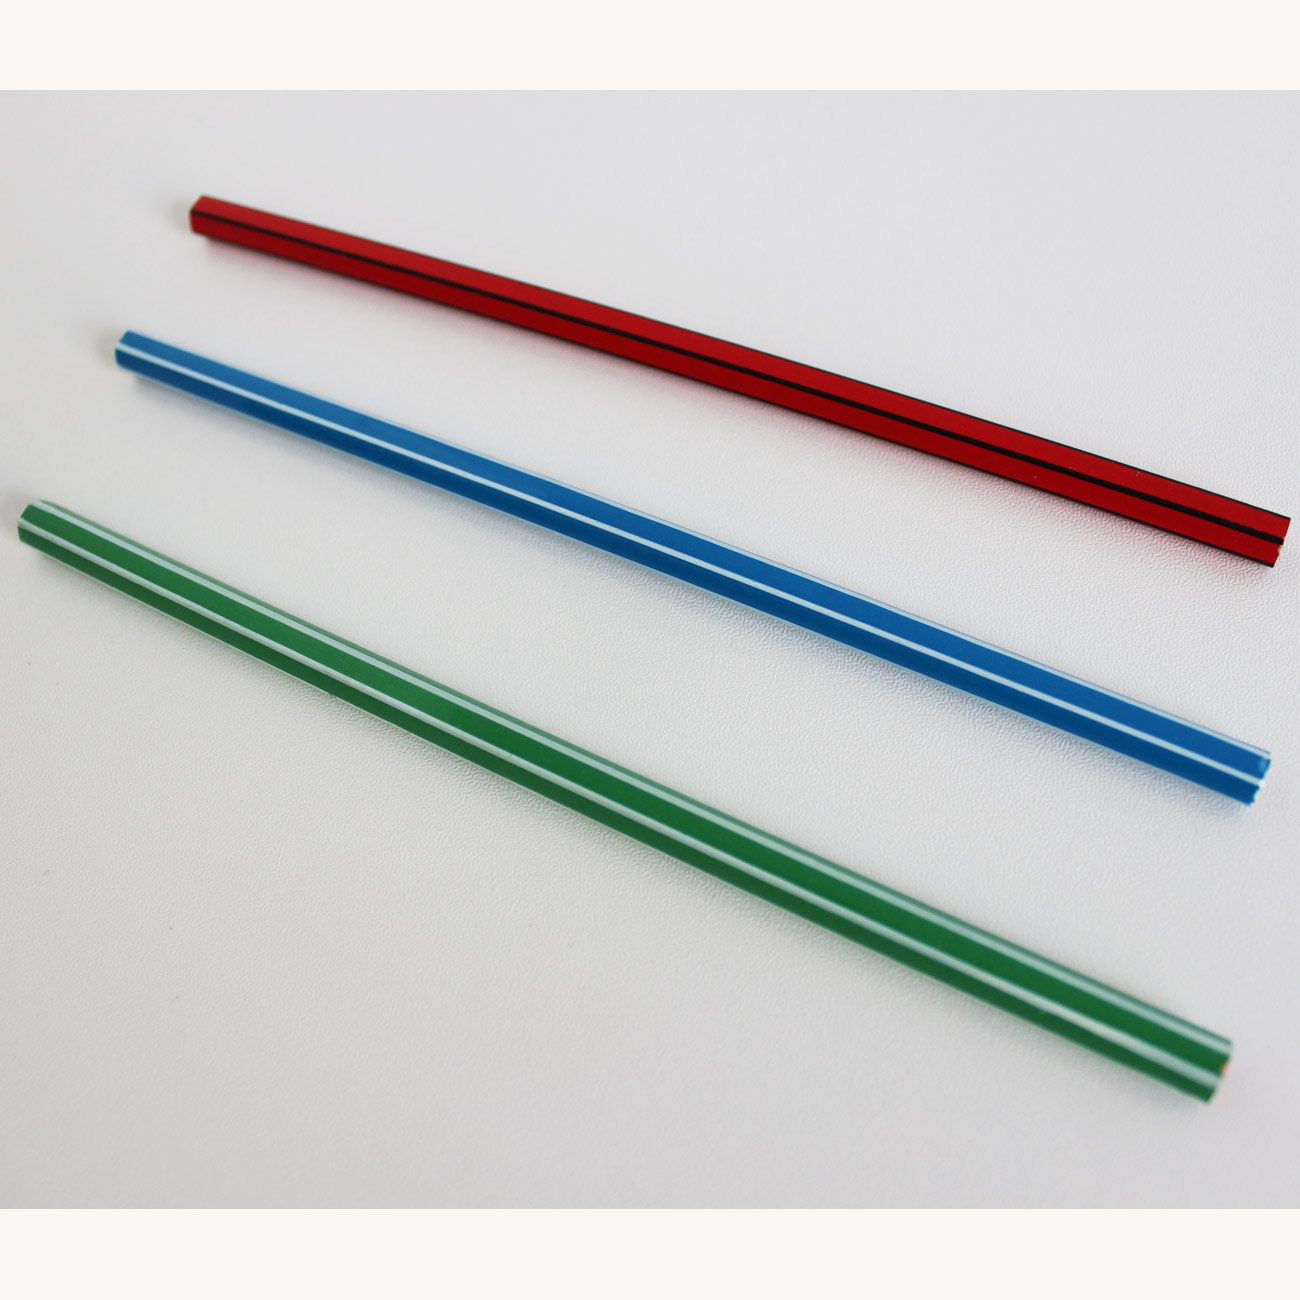 Hb Pencils with Stripe Coating and Eraser Tip